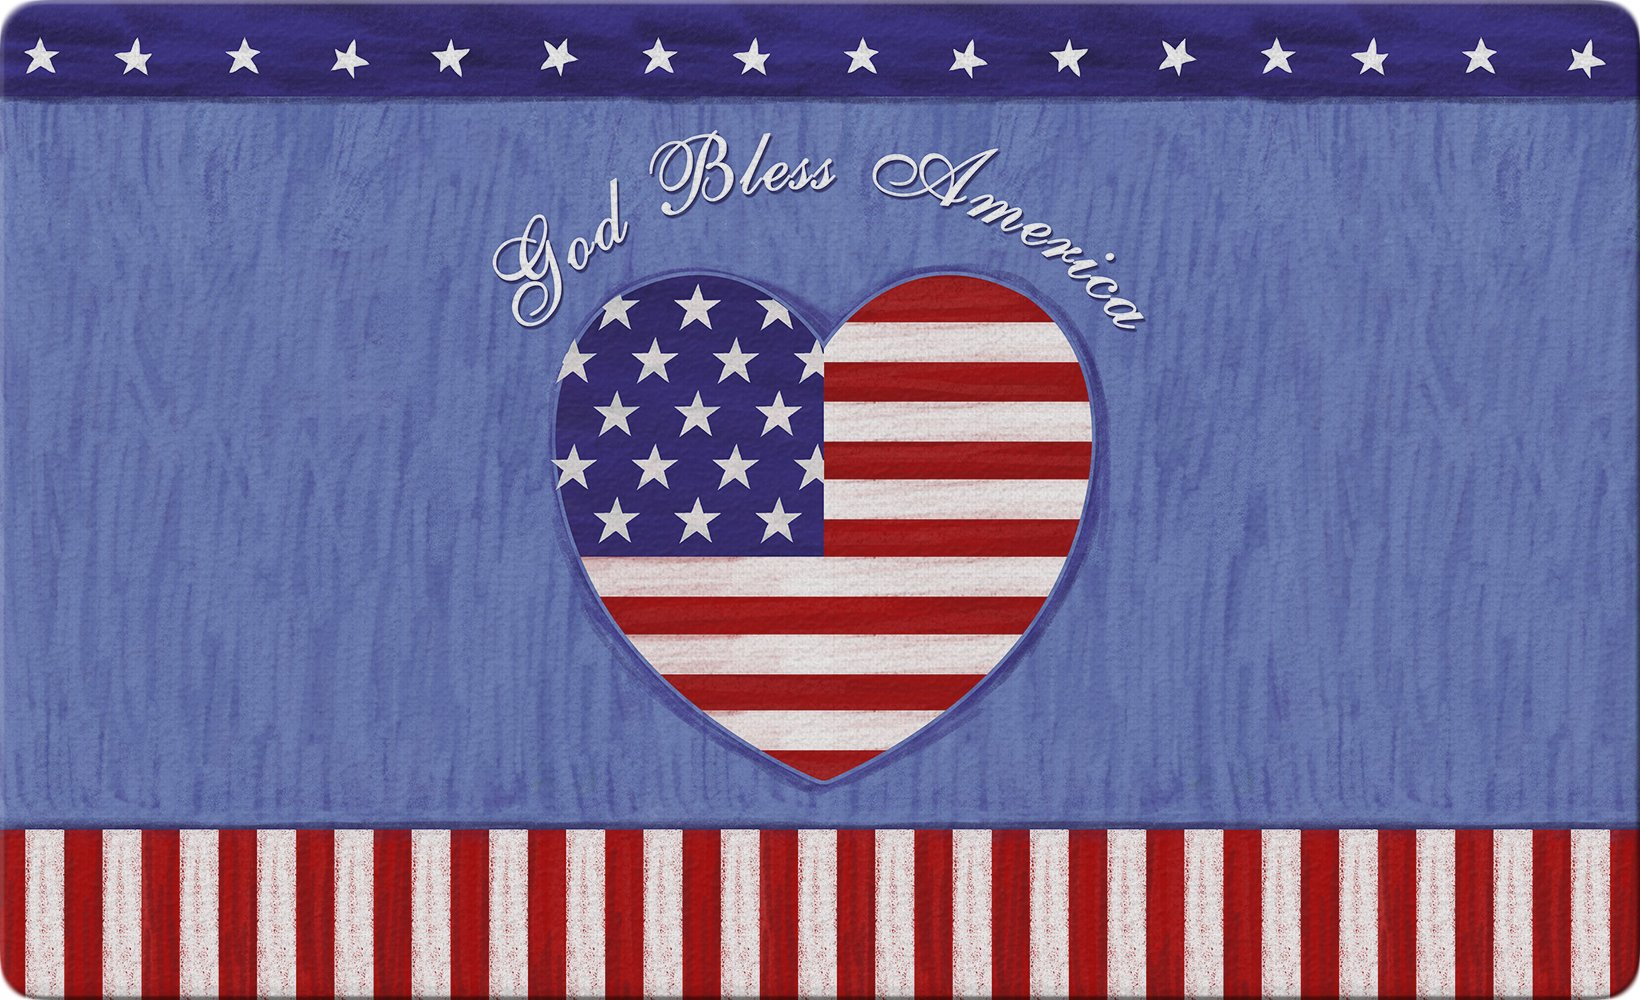 Toland Home Garden God Bless The U.S. 18 x 30 Inch Decorative Patriotic Heart Floor Mat America Doormat